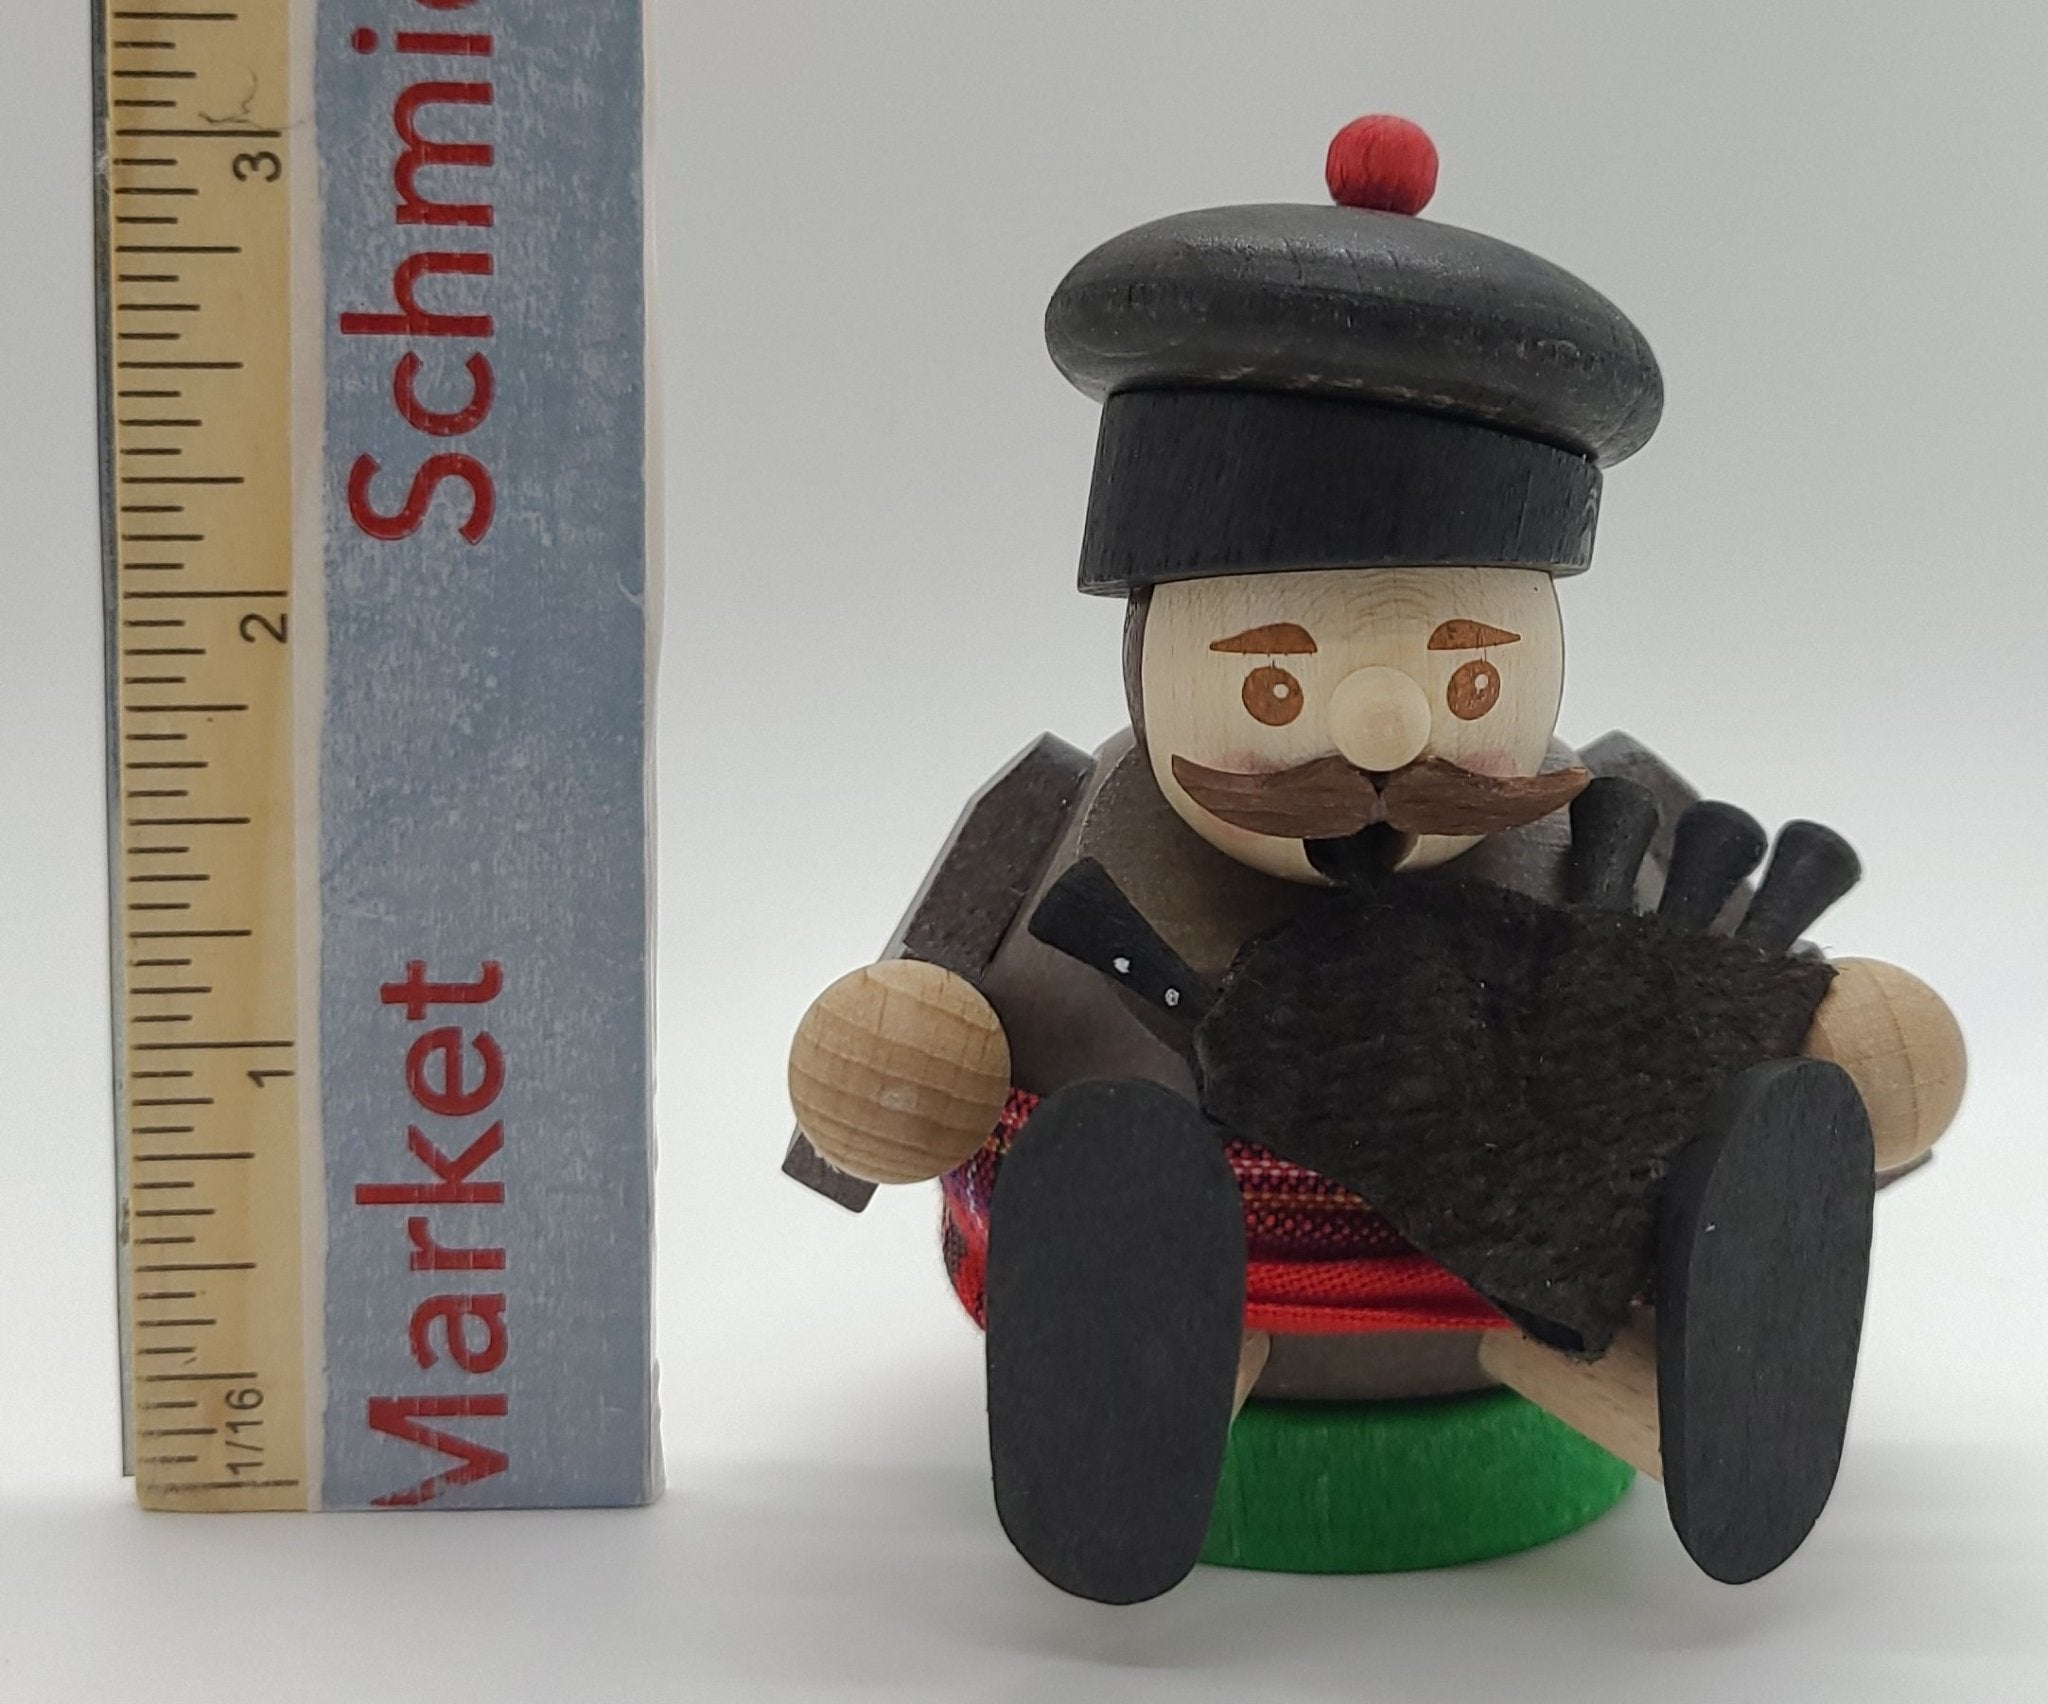 Handmade German Mini smokers Highlander Incense Burner - Schmidt Christmas Market Christmas Decoration